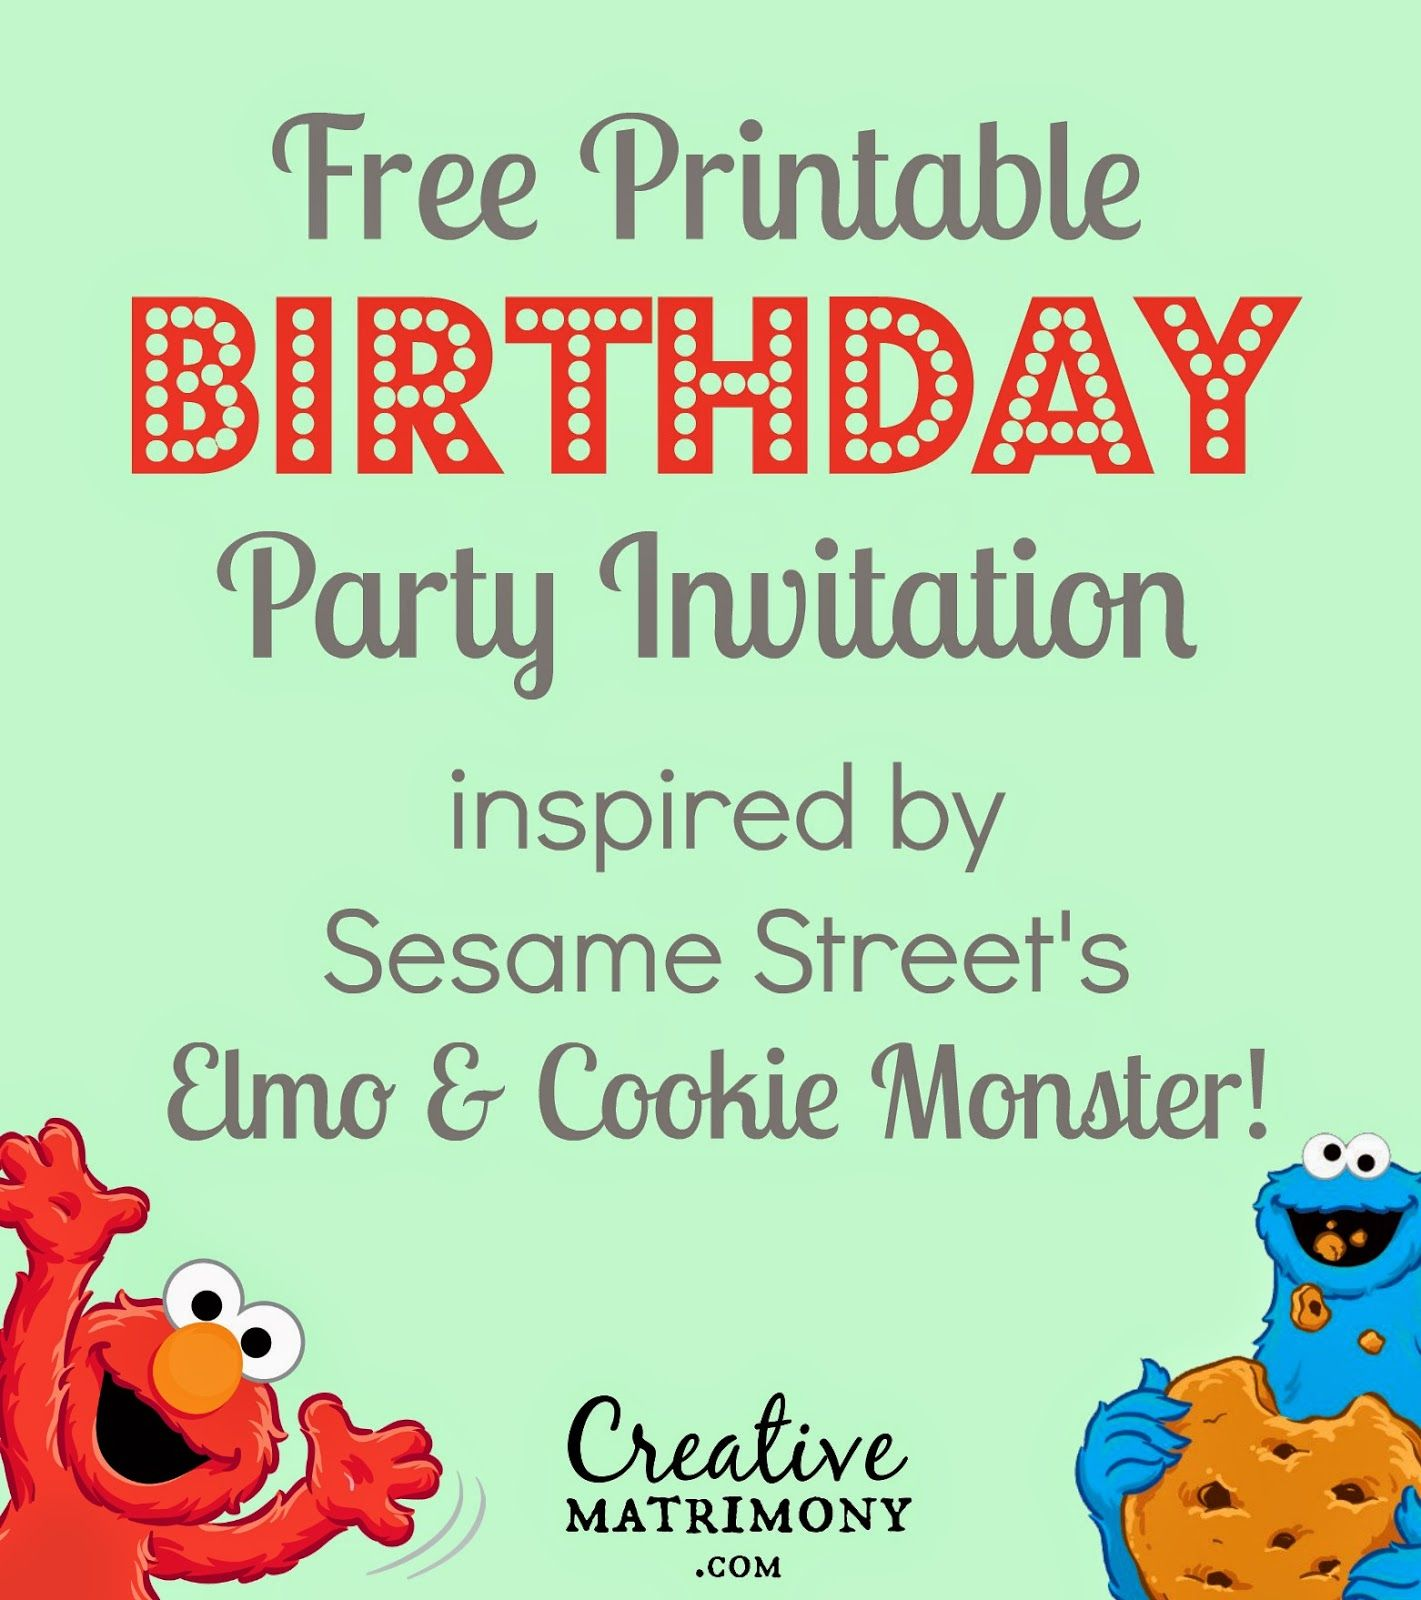 FREE PRINTABLE! Adorable Sesame Street themed birthday invitation ...